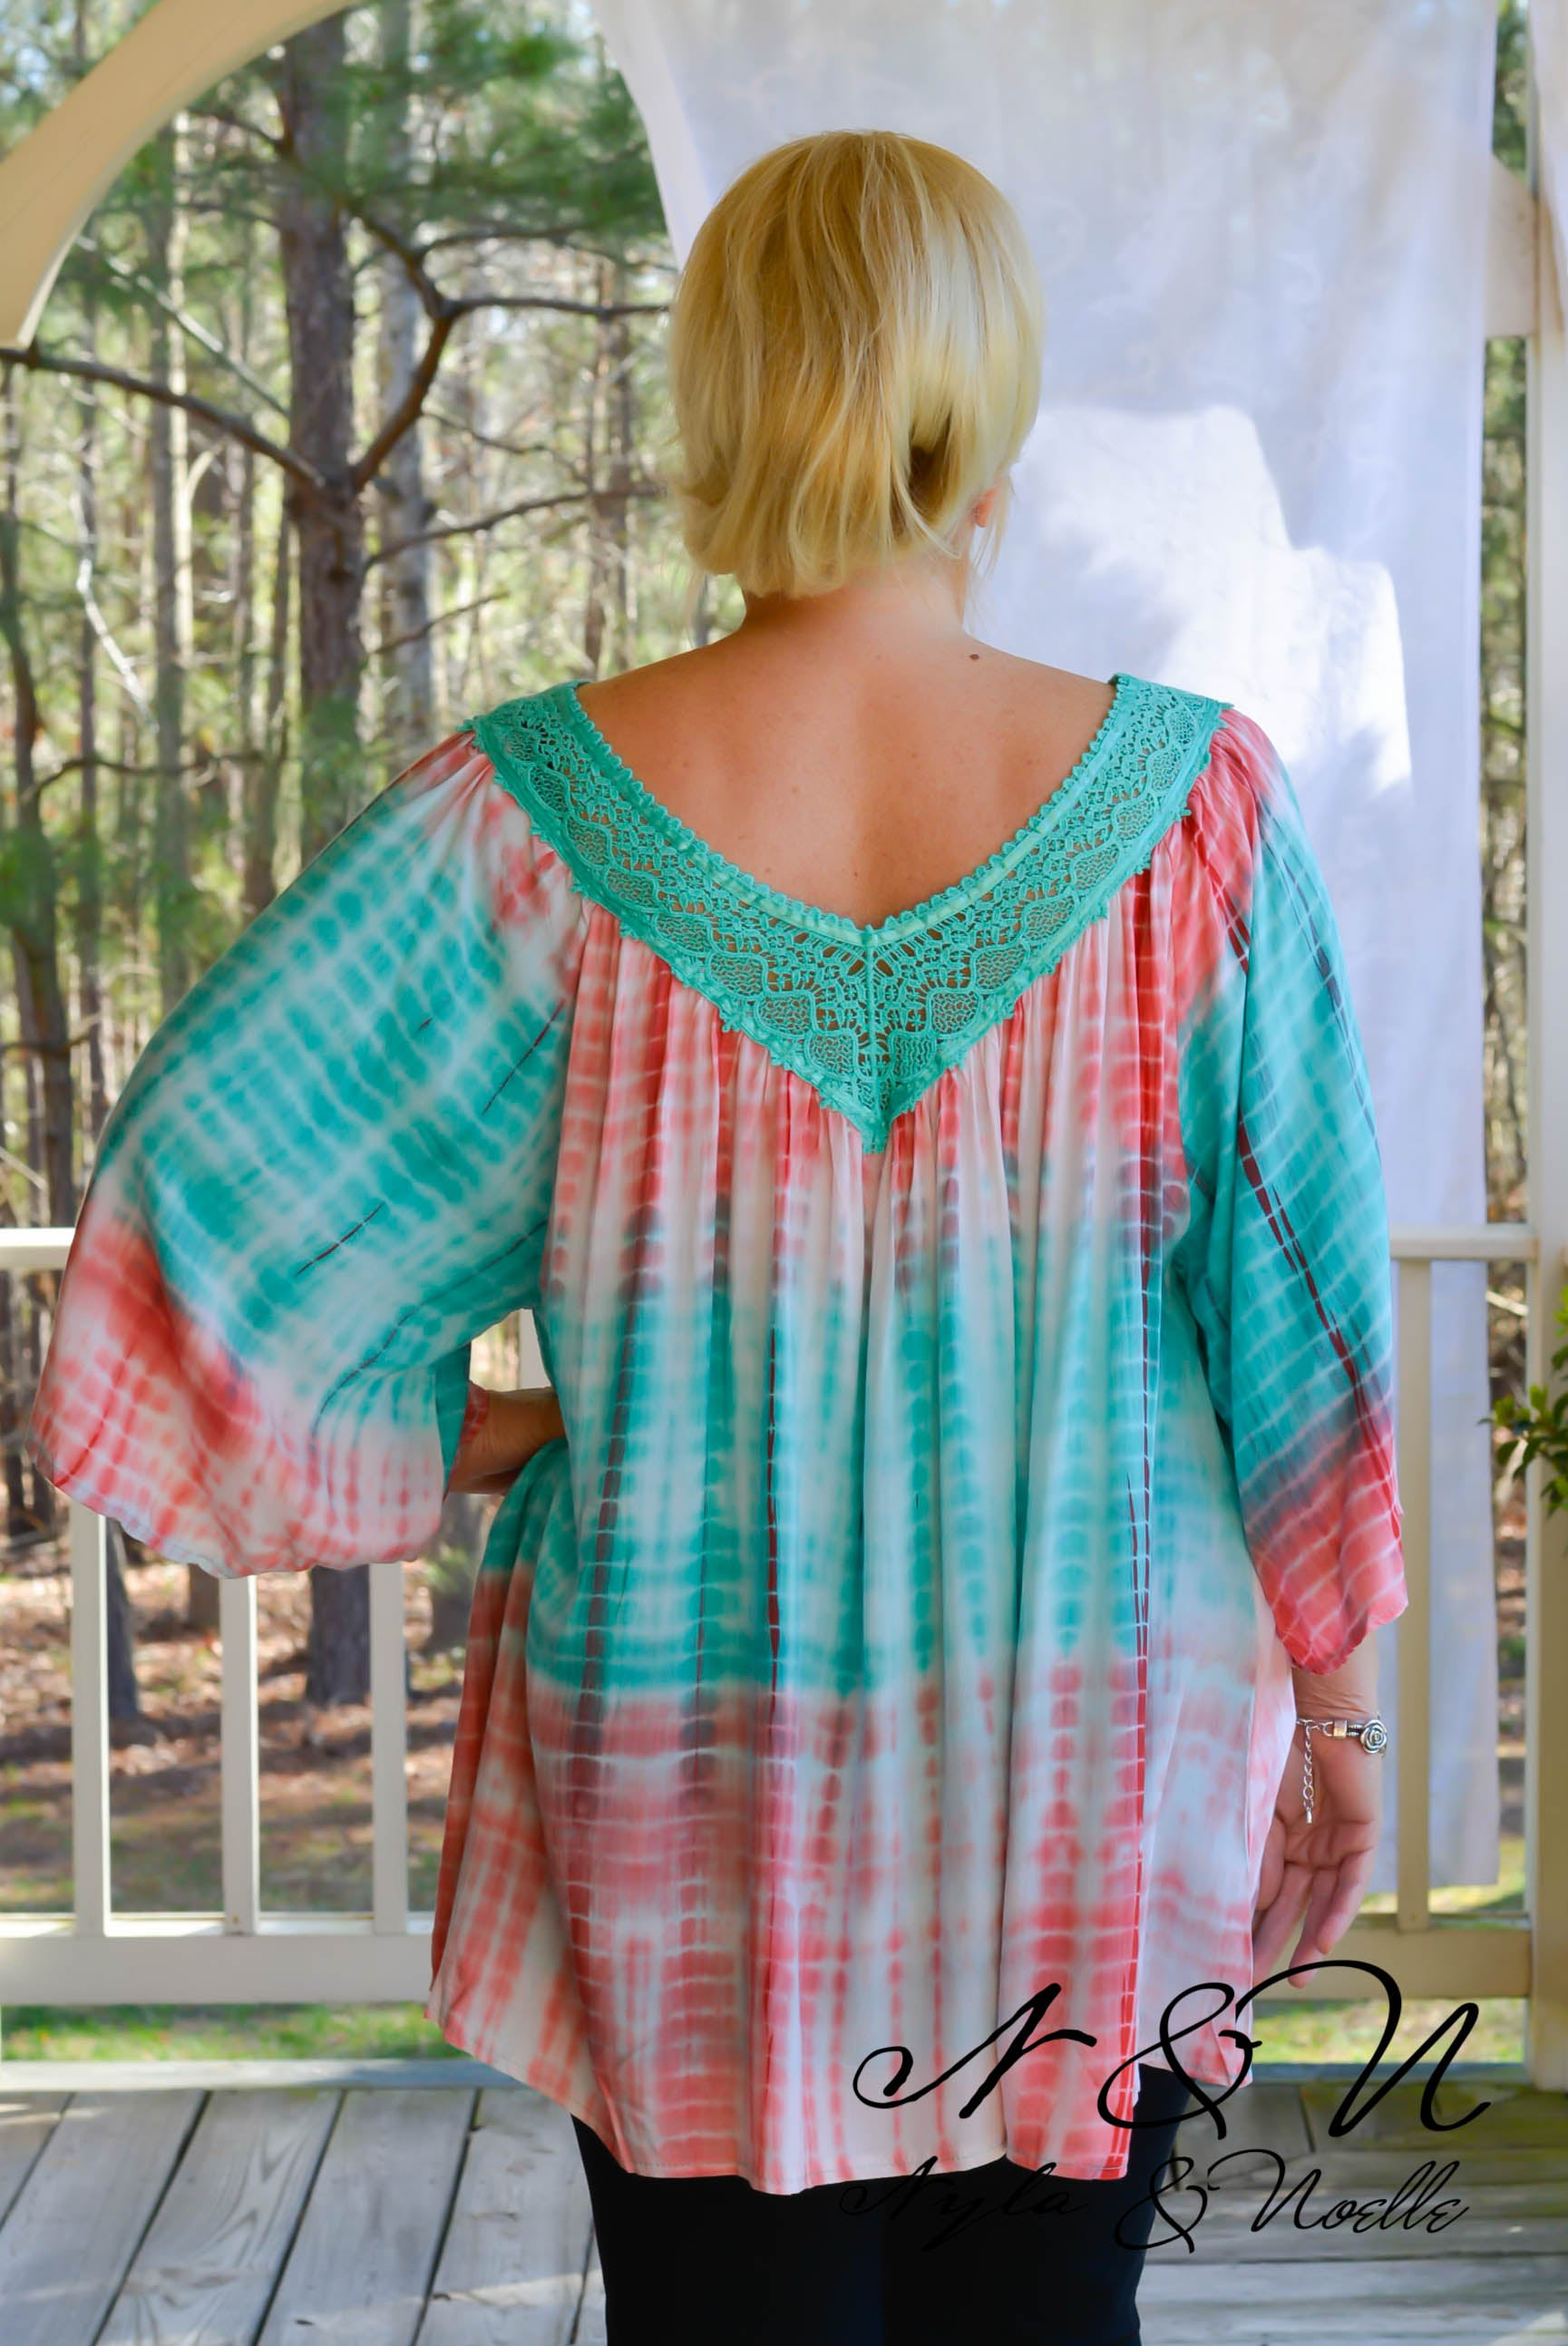 HAVANA - Boho Cut Lace Accented Tie Dye Top